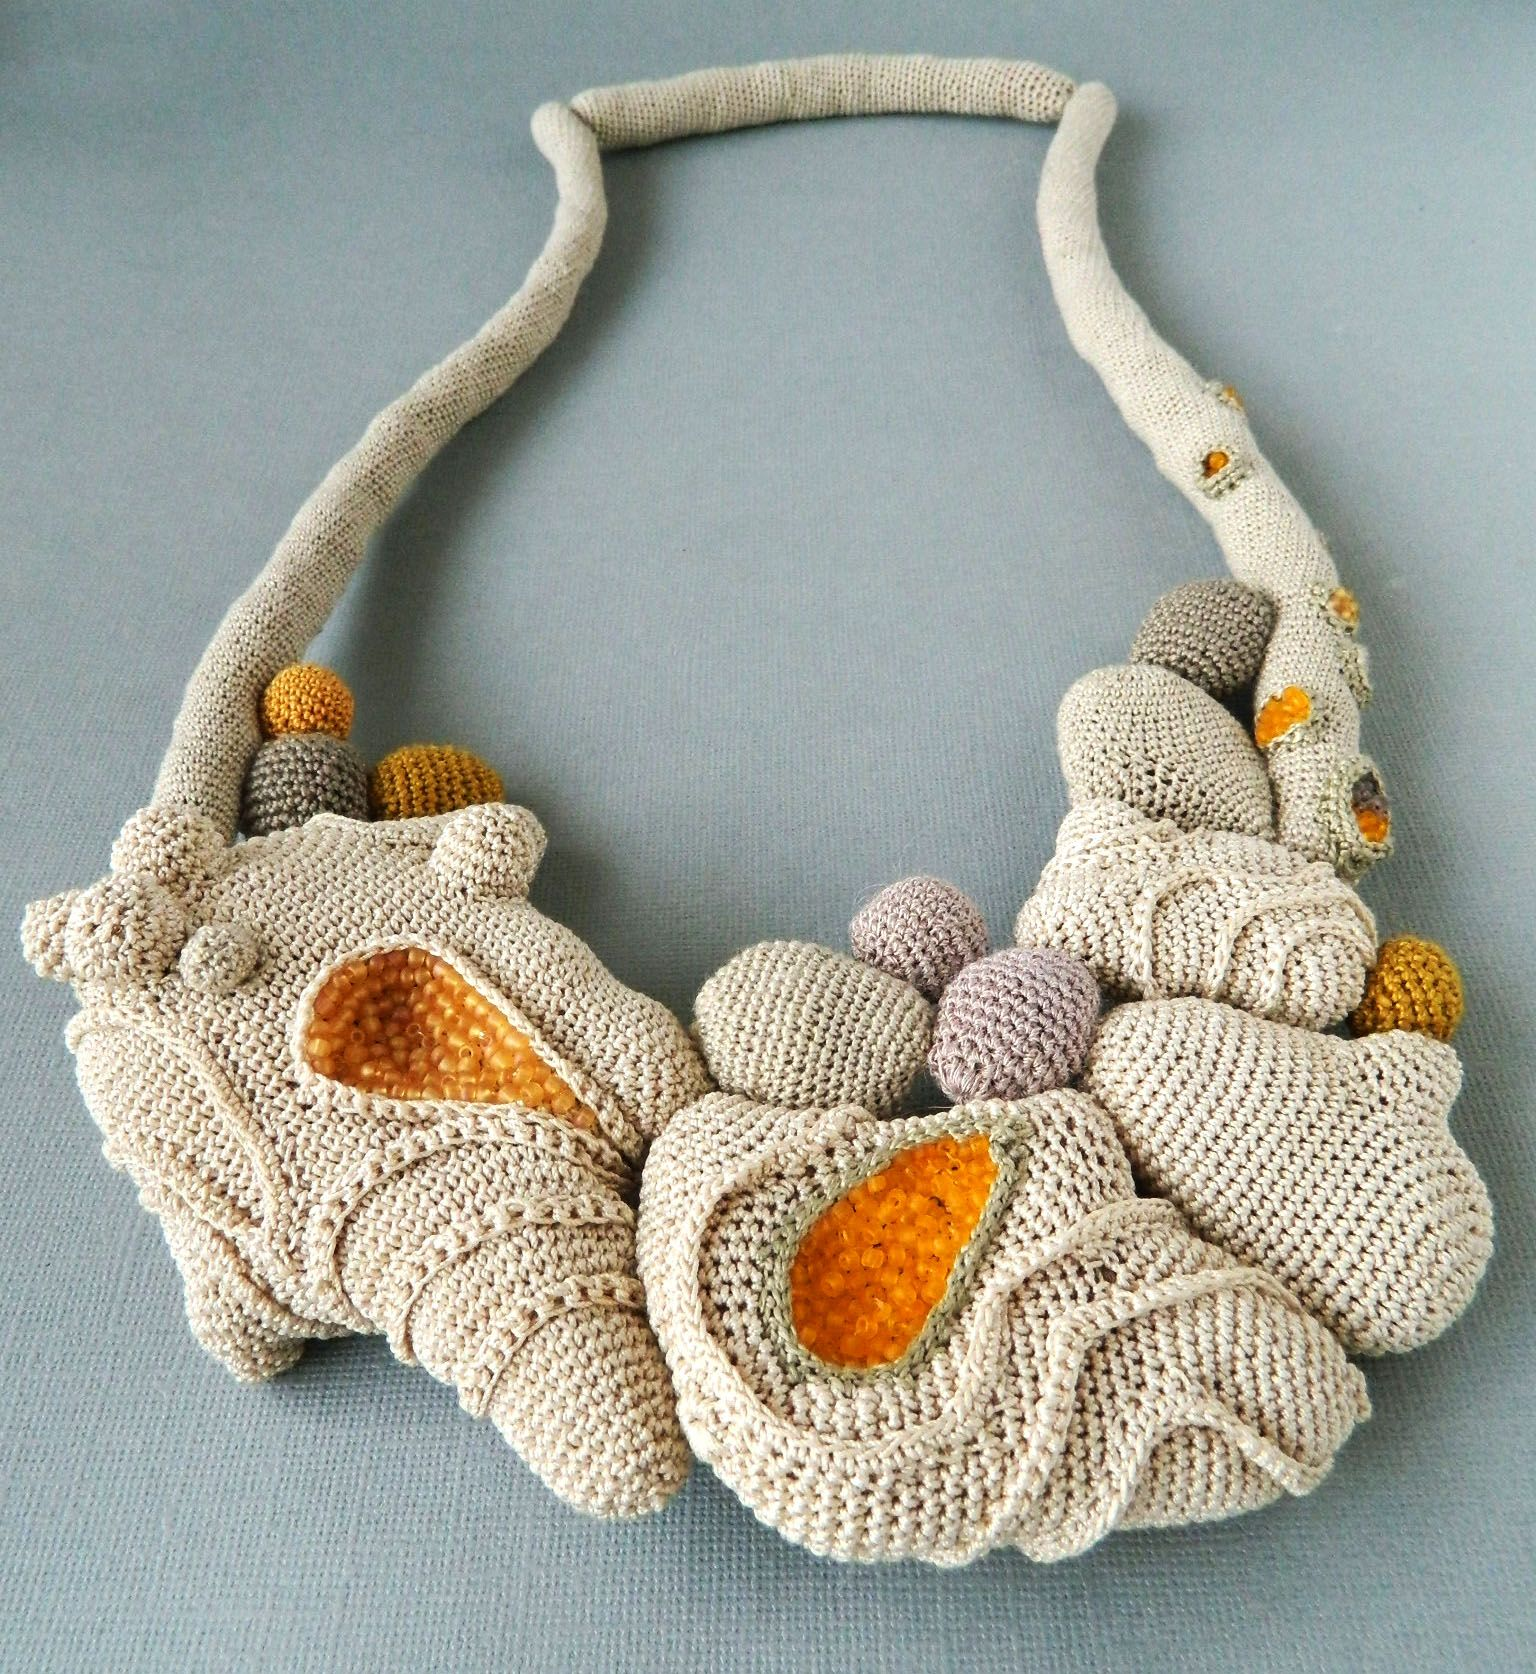 Crochet necklace ( cotton, fabric, glass beads). 2013